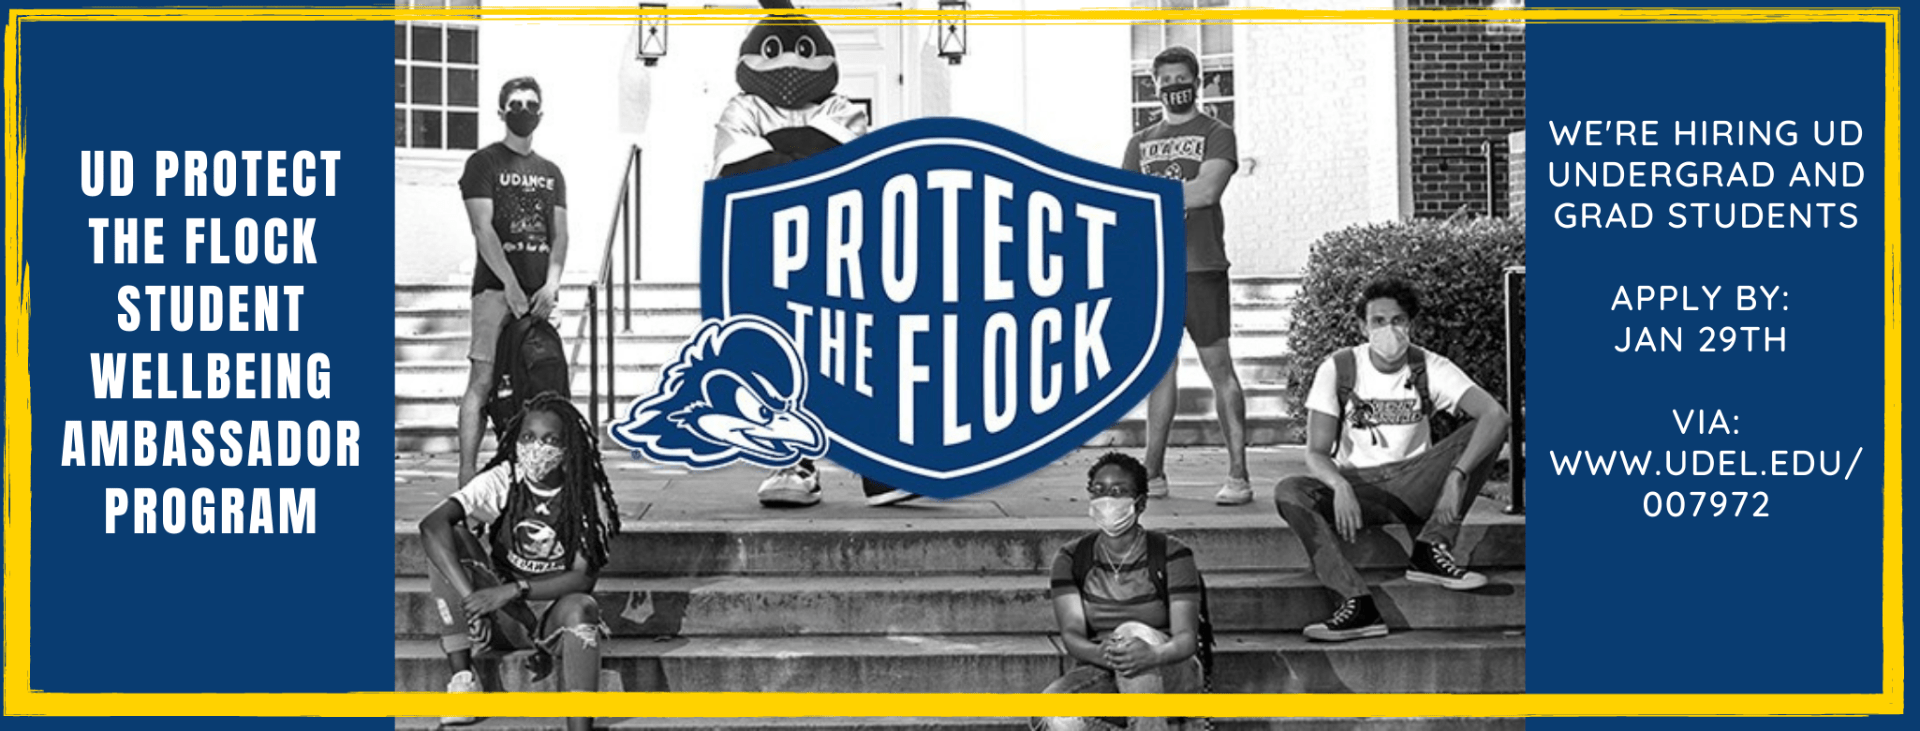 promo banner for new amabassdor program with students and YoUDee wearing masks supporting the protect the flock campaign to reduce covid-19 spread